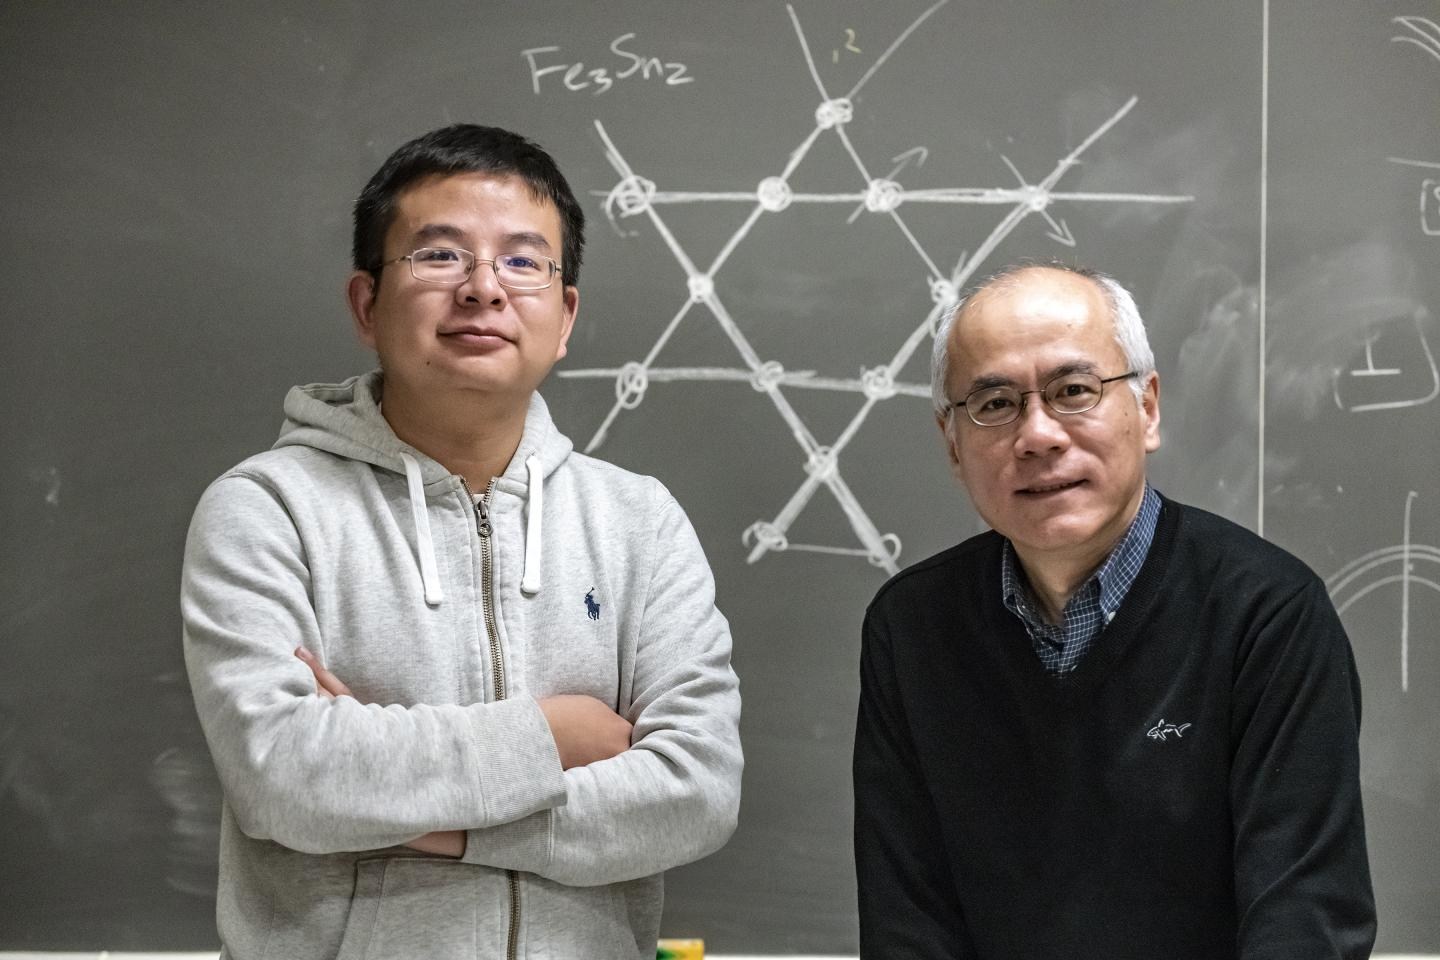 Boston College Theoretical Physicists